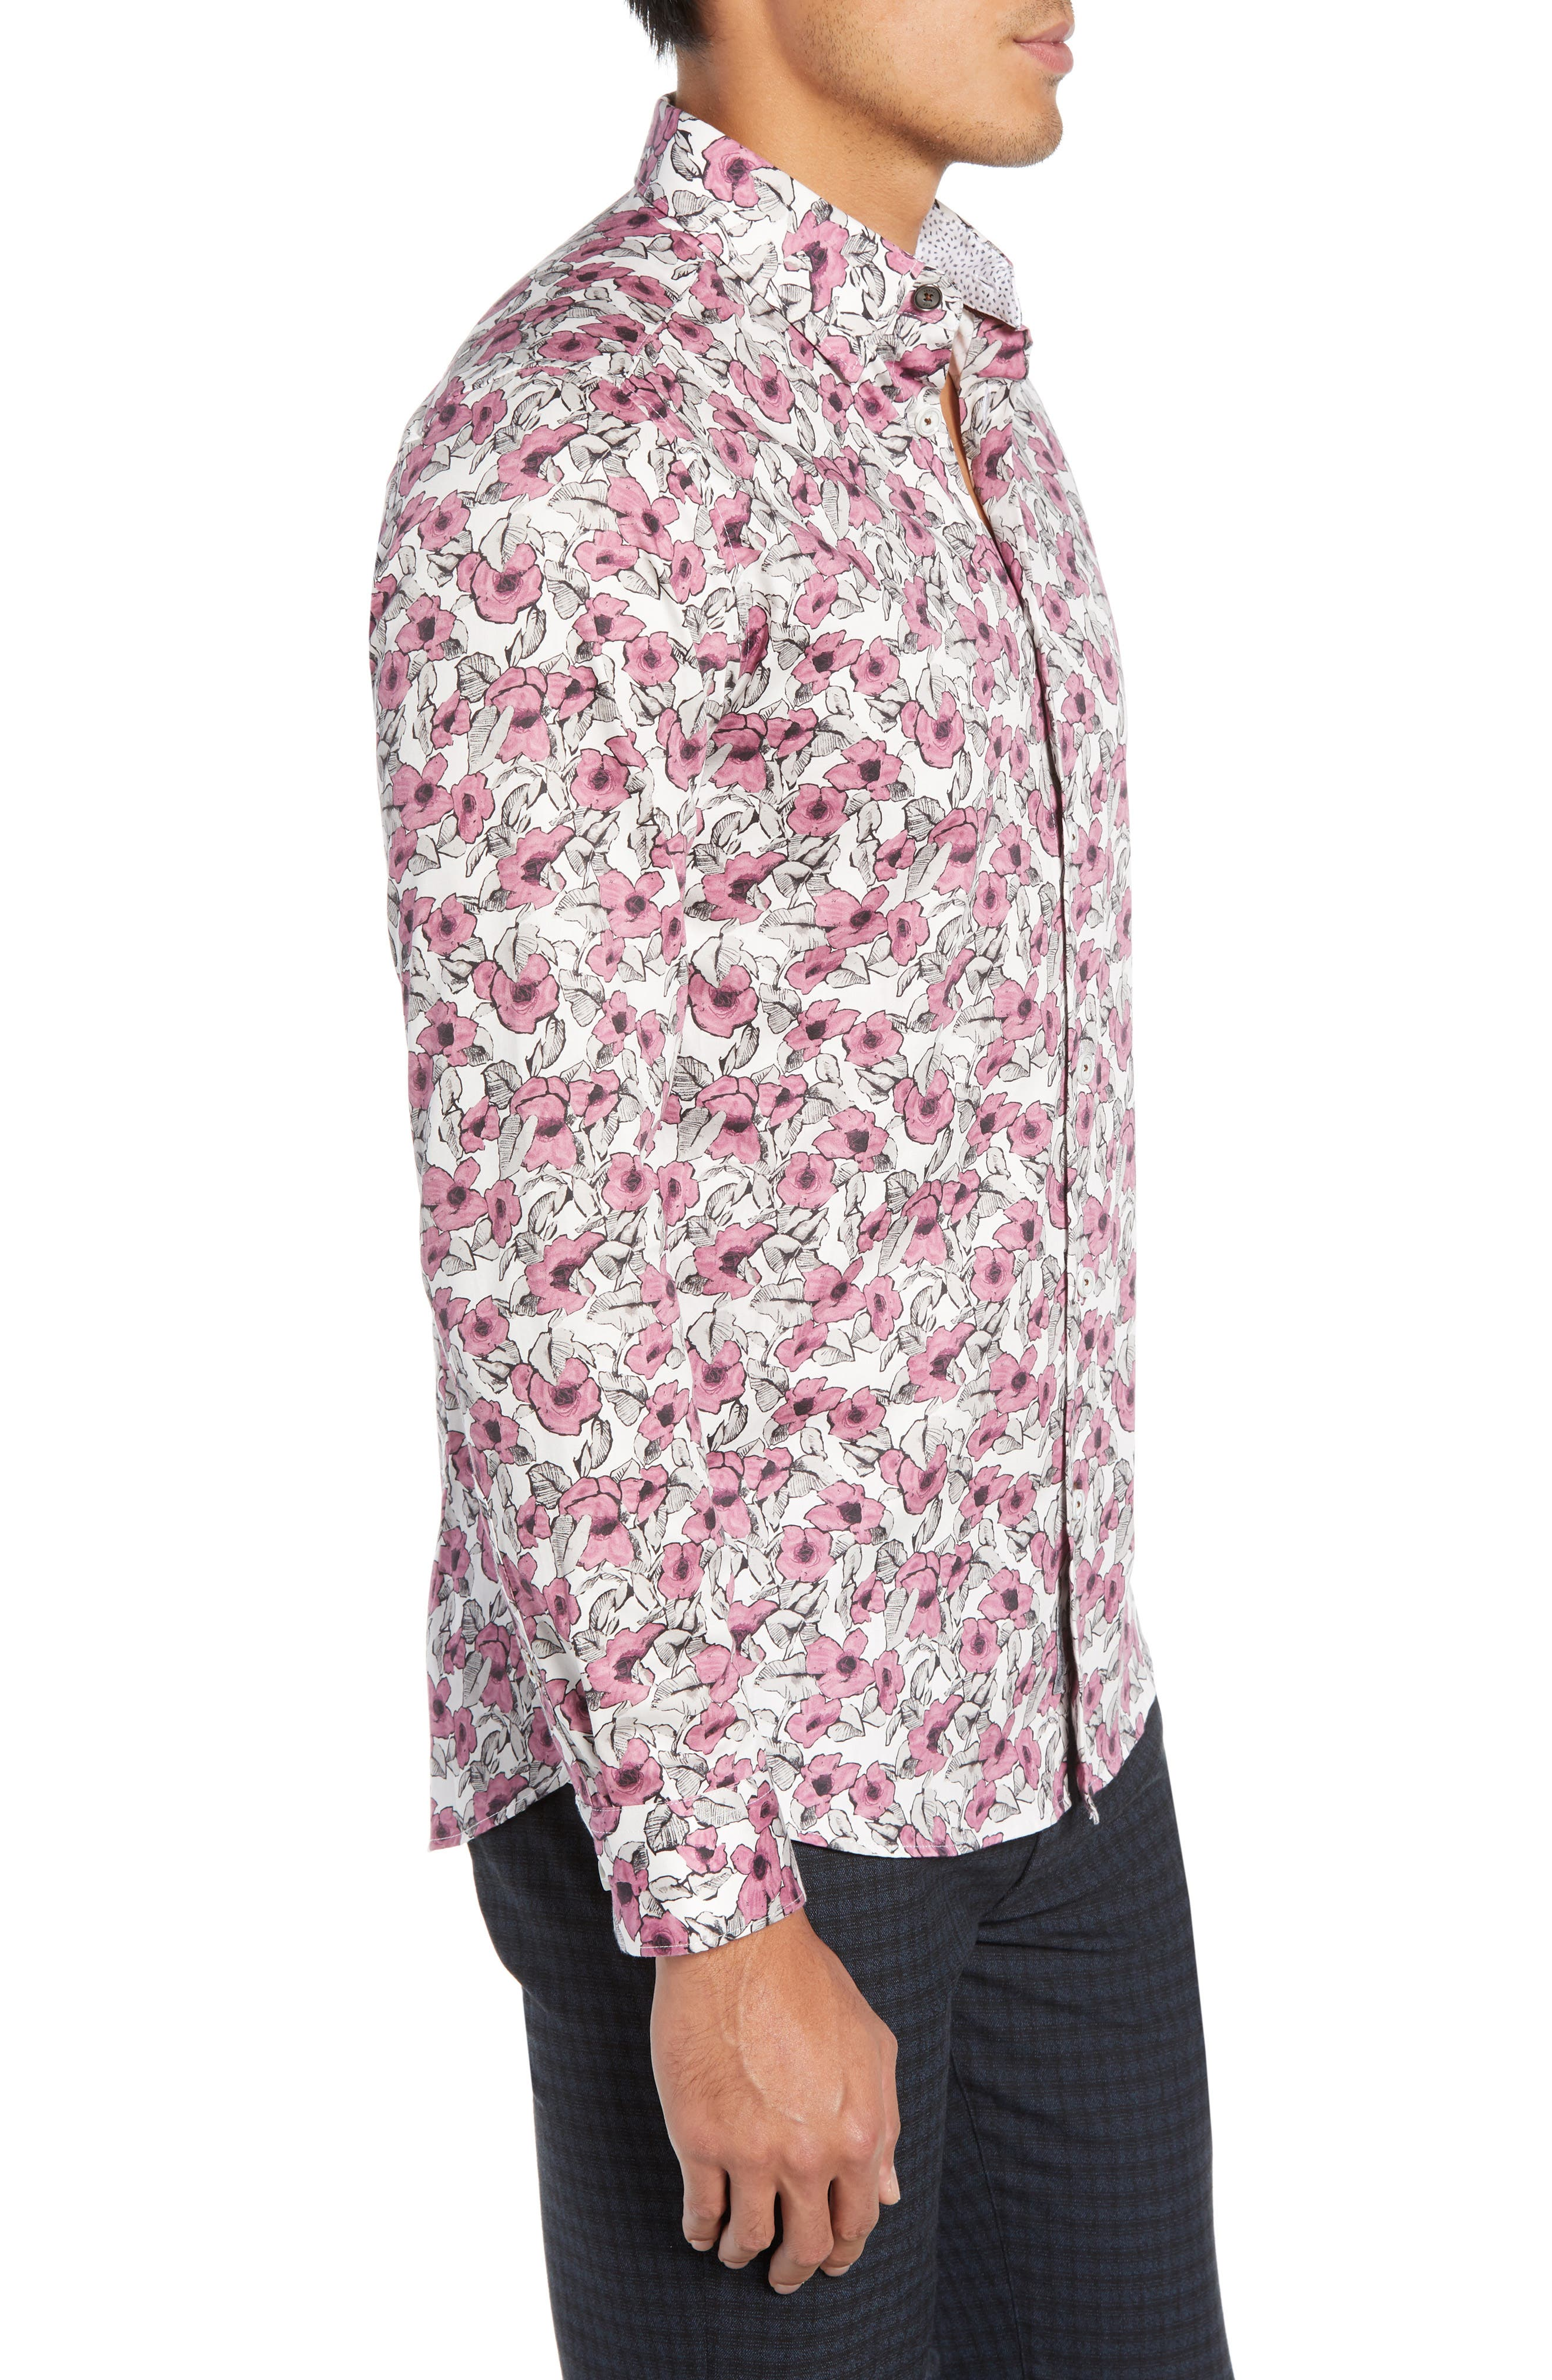 Croyden Slim Fit Floral Sport Shirt,                             Alternate thumbnail 4, color,                             PINK